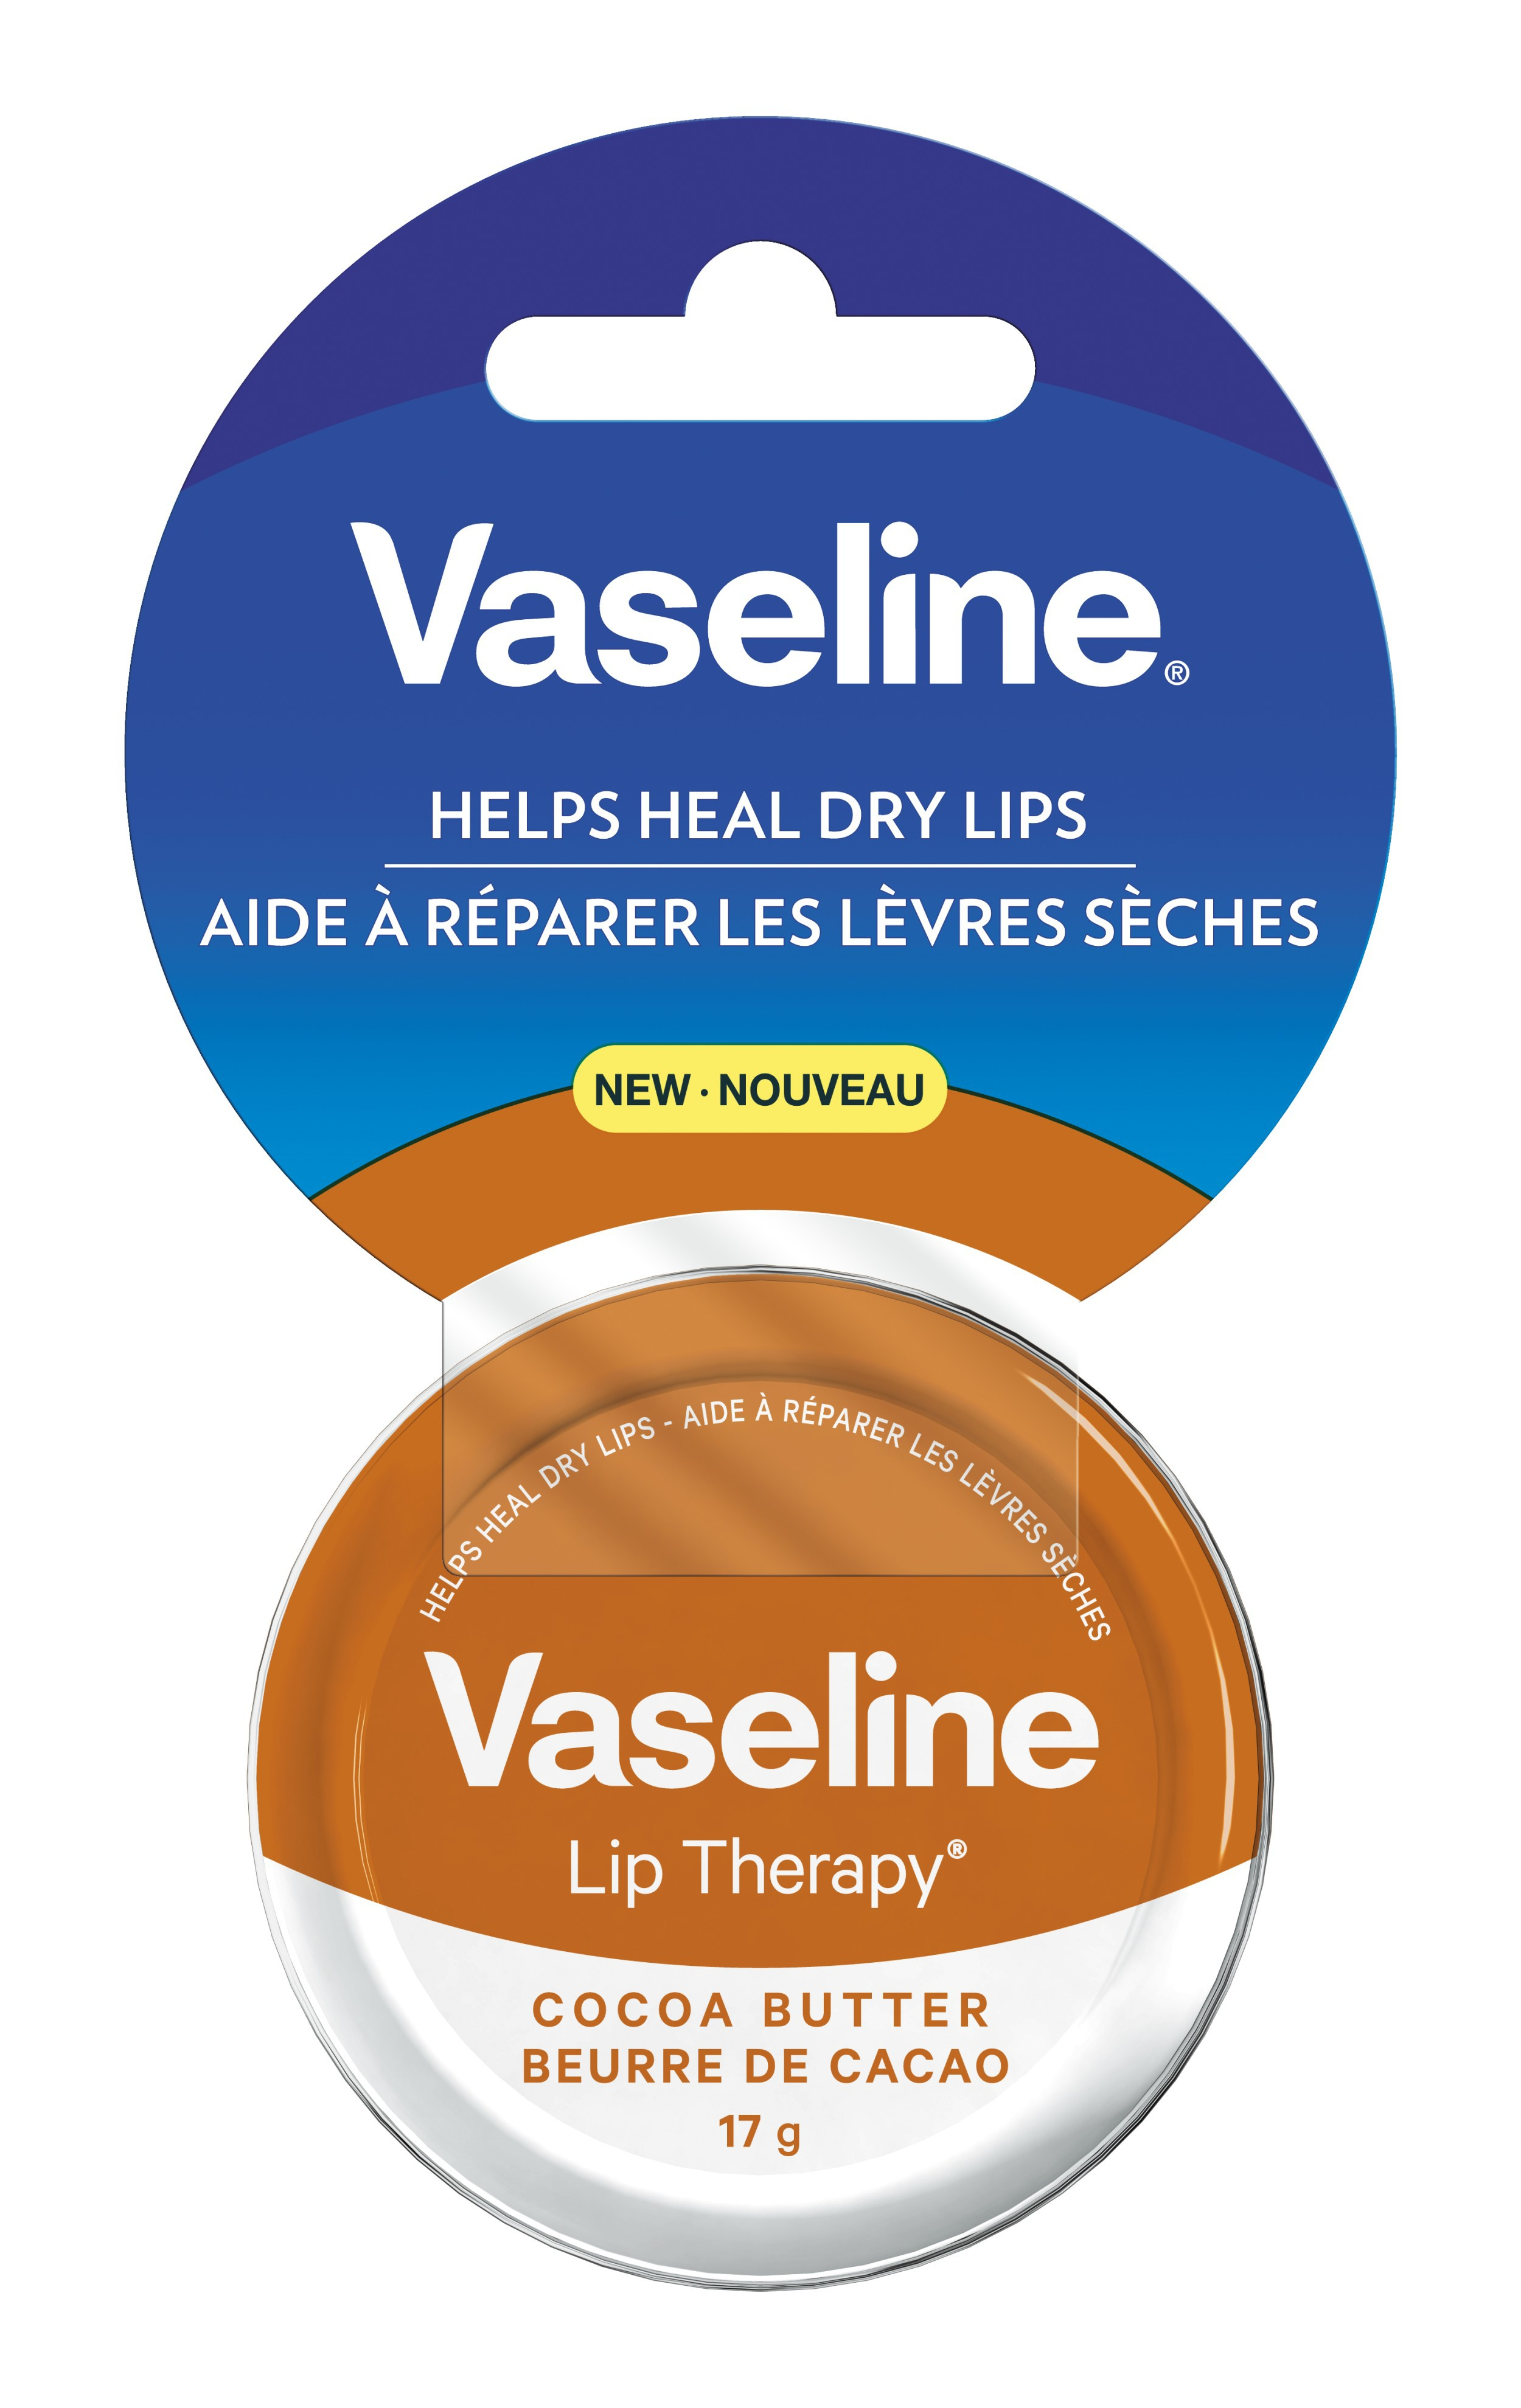 Vaseline Lip Therapy Cocoa Butter Reviews In Balms Treatments Rosy 7g Original Usa 100